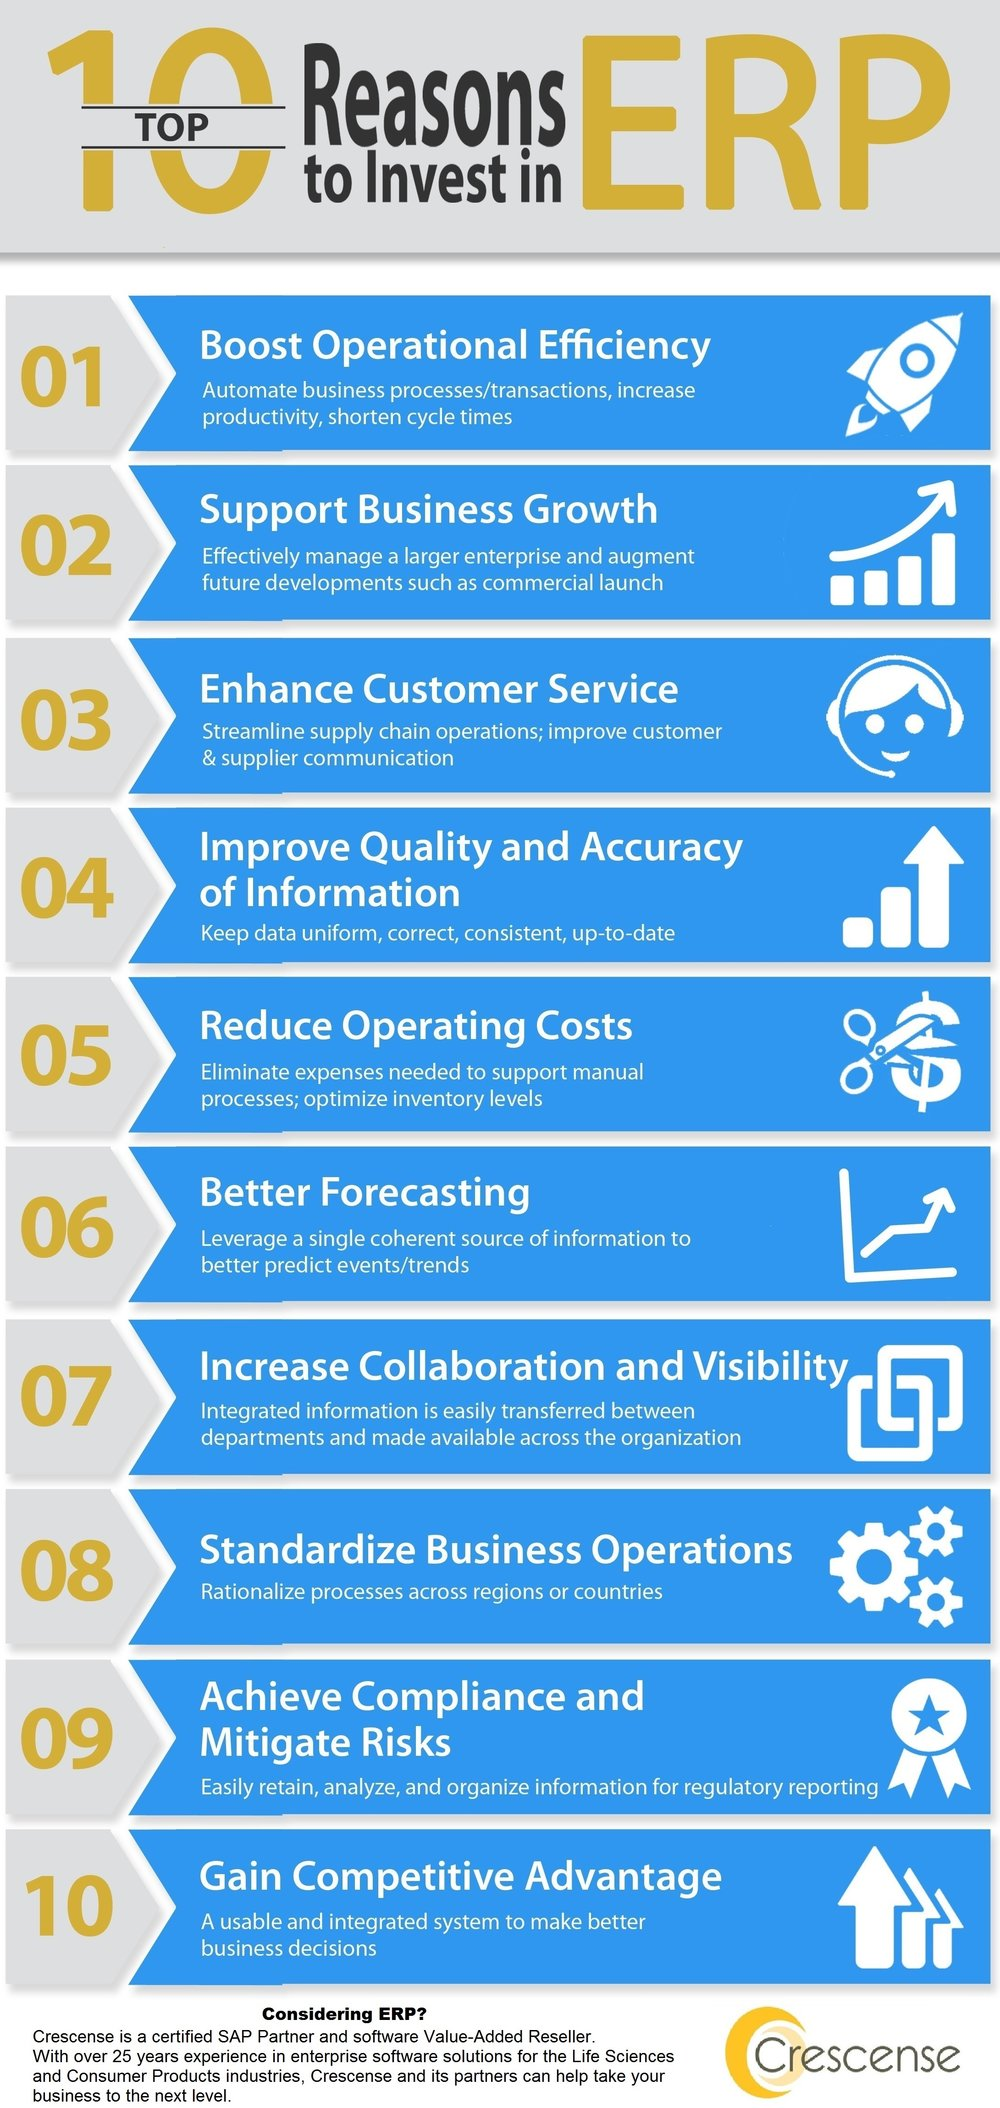 Crescense- Top 10 Reasons - ERP v3.jpg